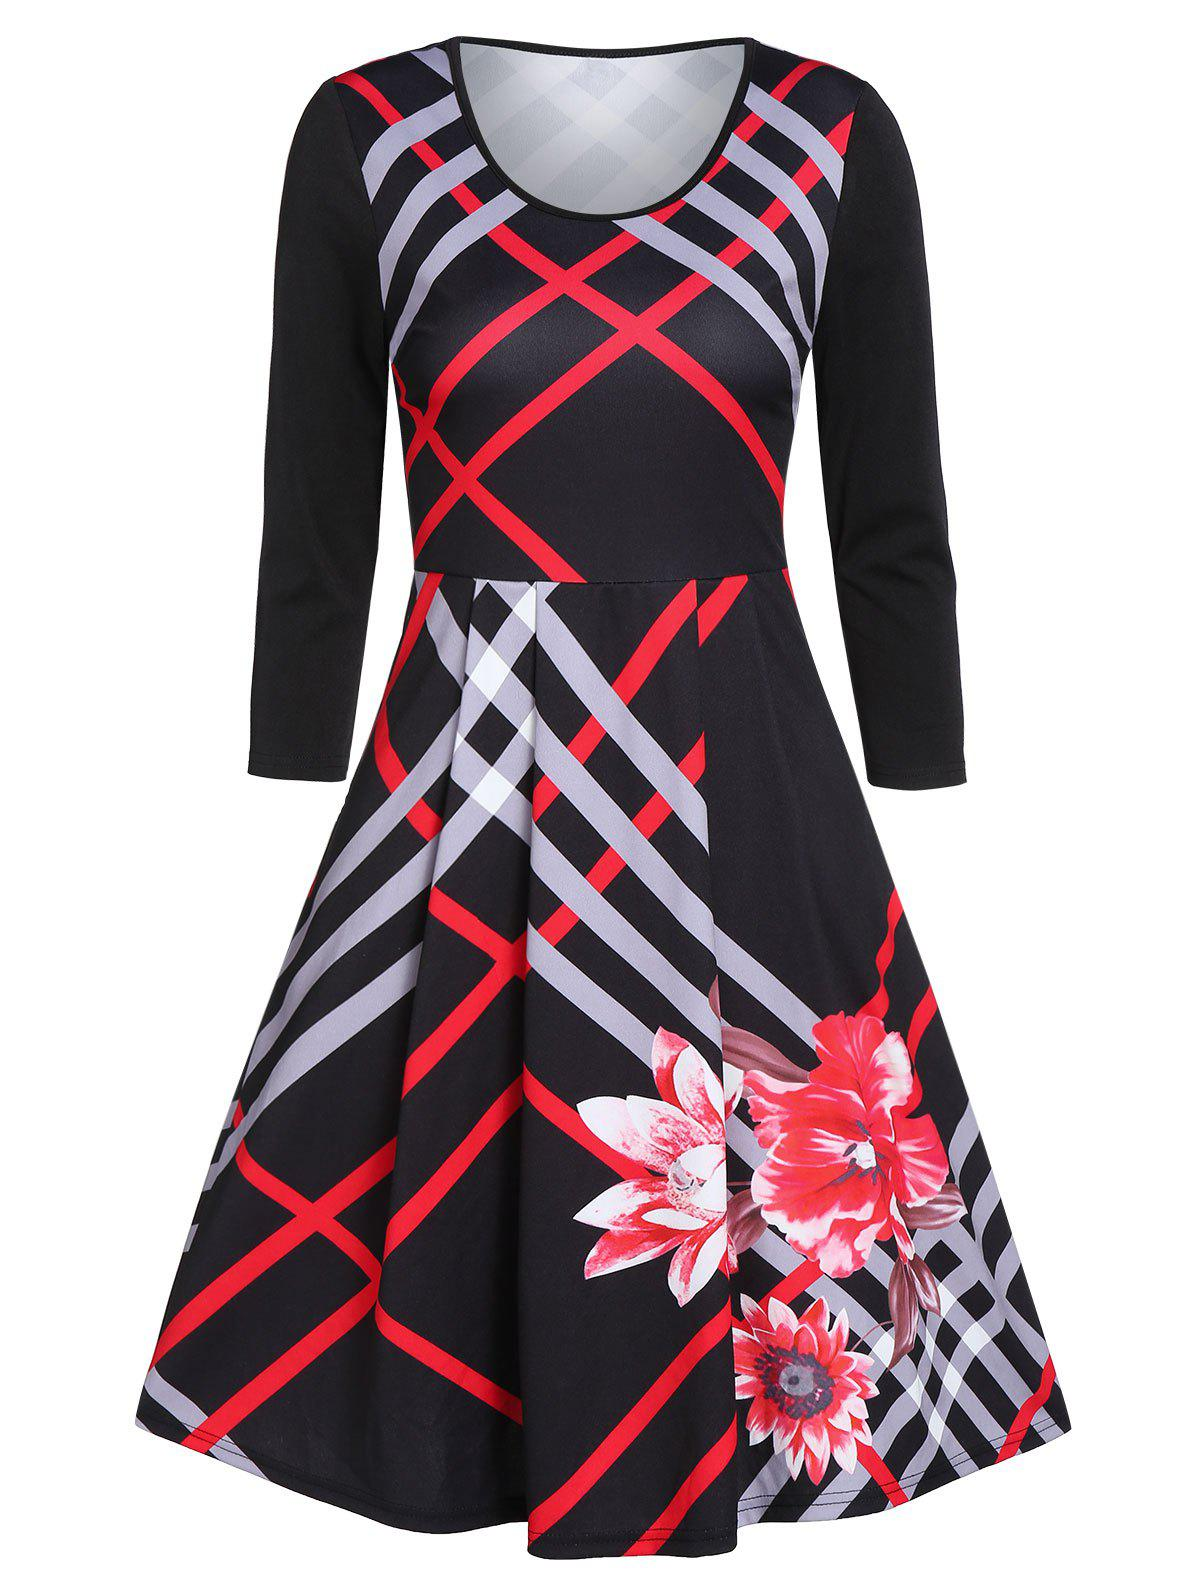 New Striped Round Collar Fit And Flare Dress